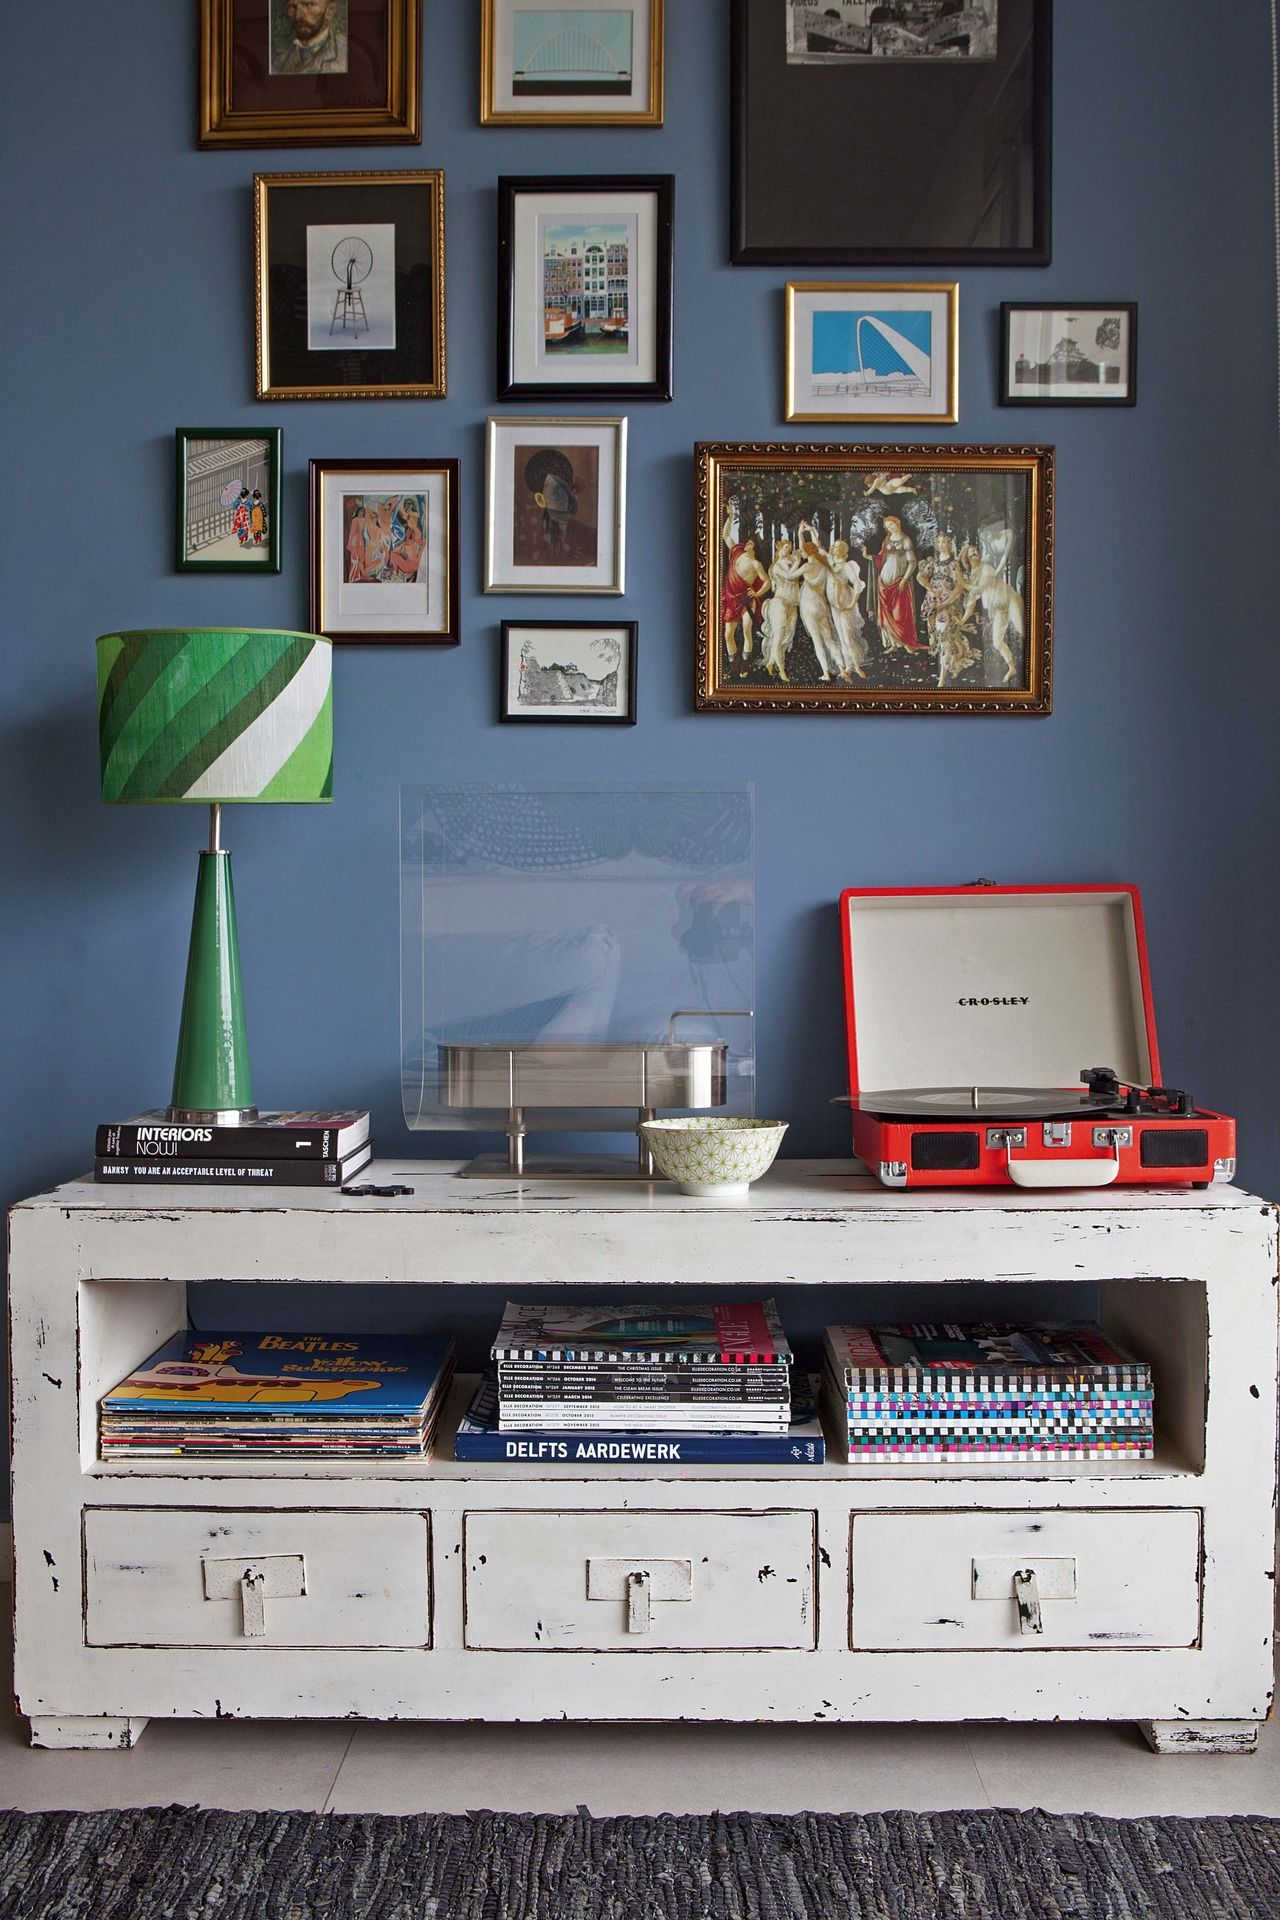 Un D Plex Decorado Con Colores Plenos Tocadiscos Crosley  # Muebles Momento Actual